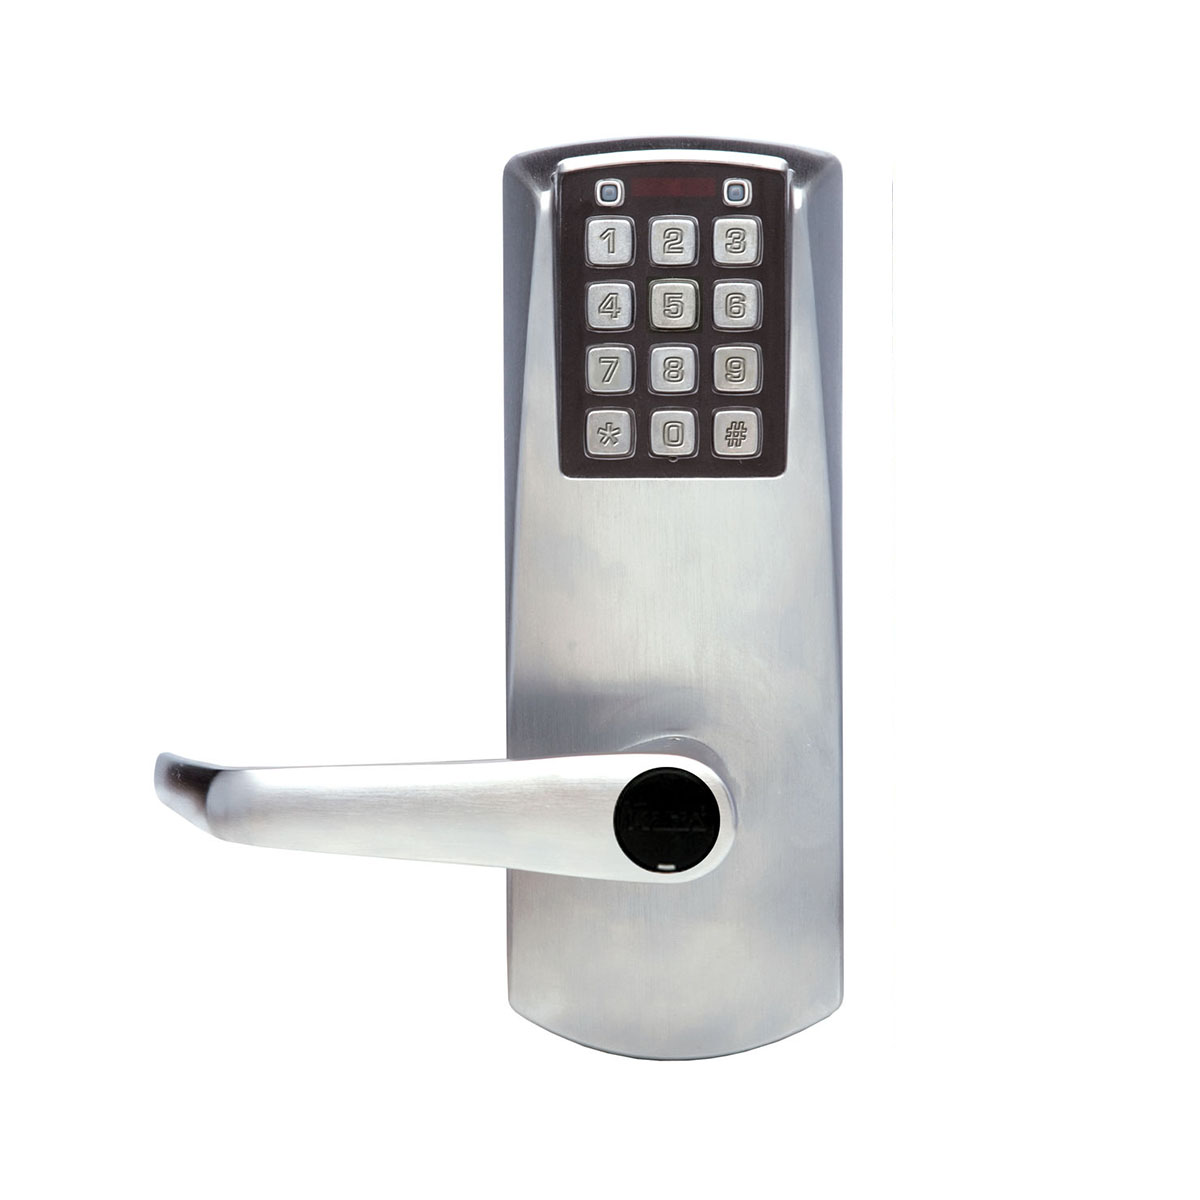 E Plex 2000 Electronic Pushbutton Lock Kaba Access Data Systems Wiring Diagrams By Sargent Locks Powerplex Self Powered